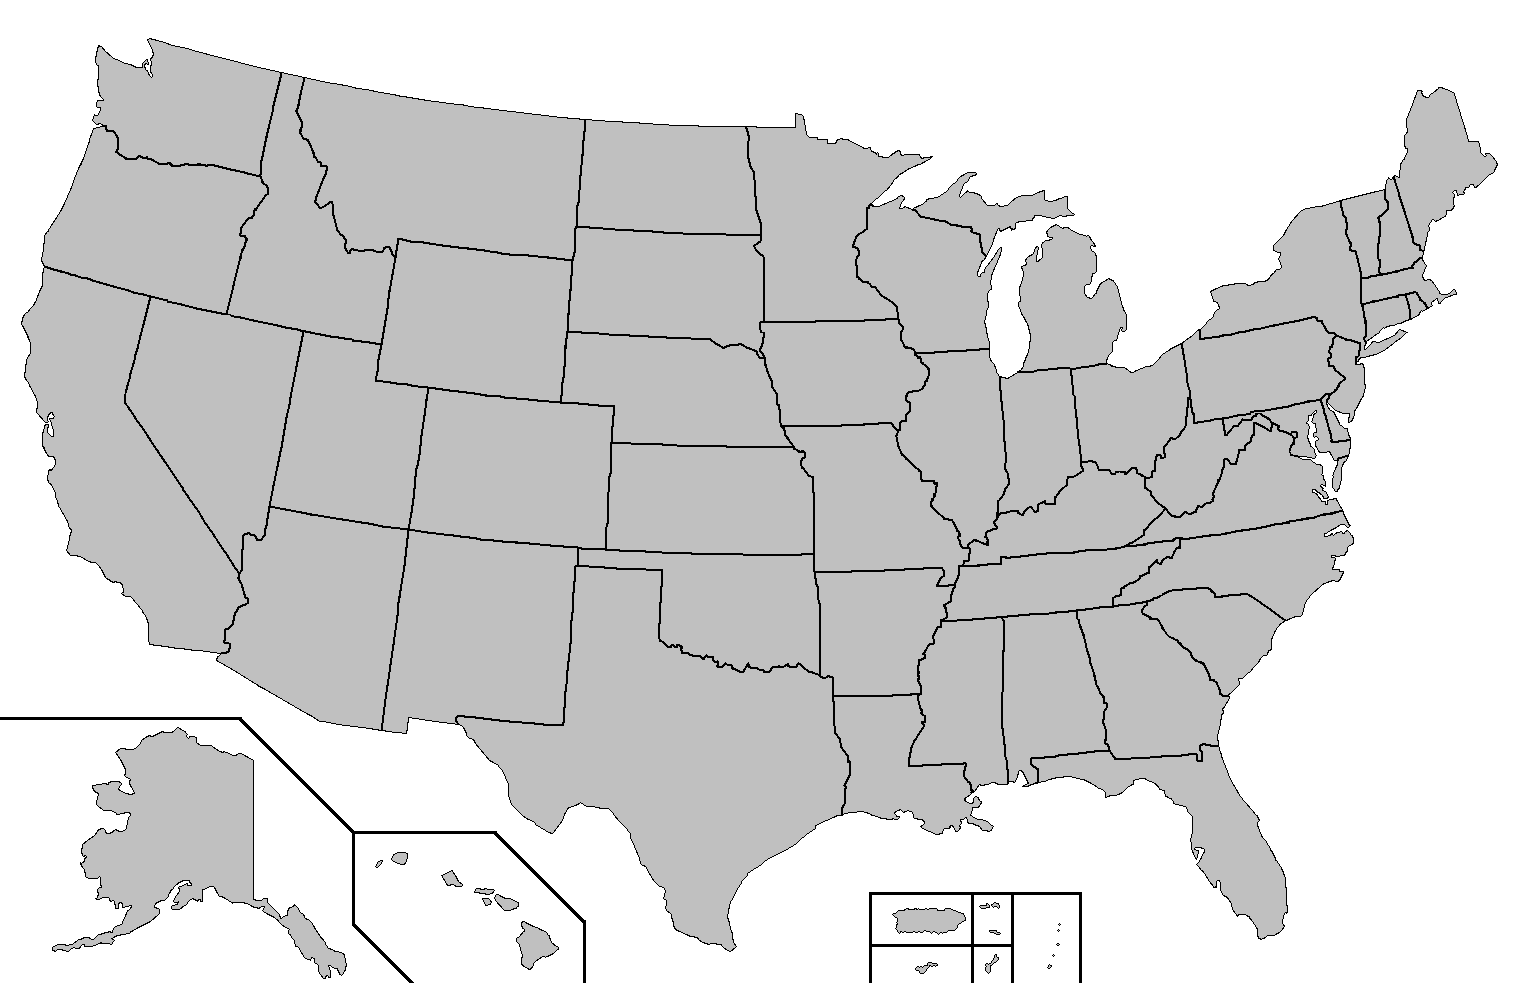 FileBlank Map Of The United StatesPNG Wikimedia Commons - Map of unites states